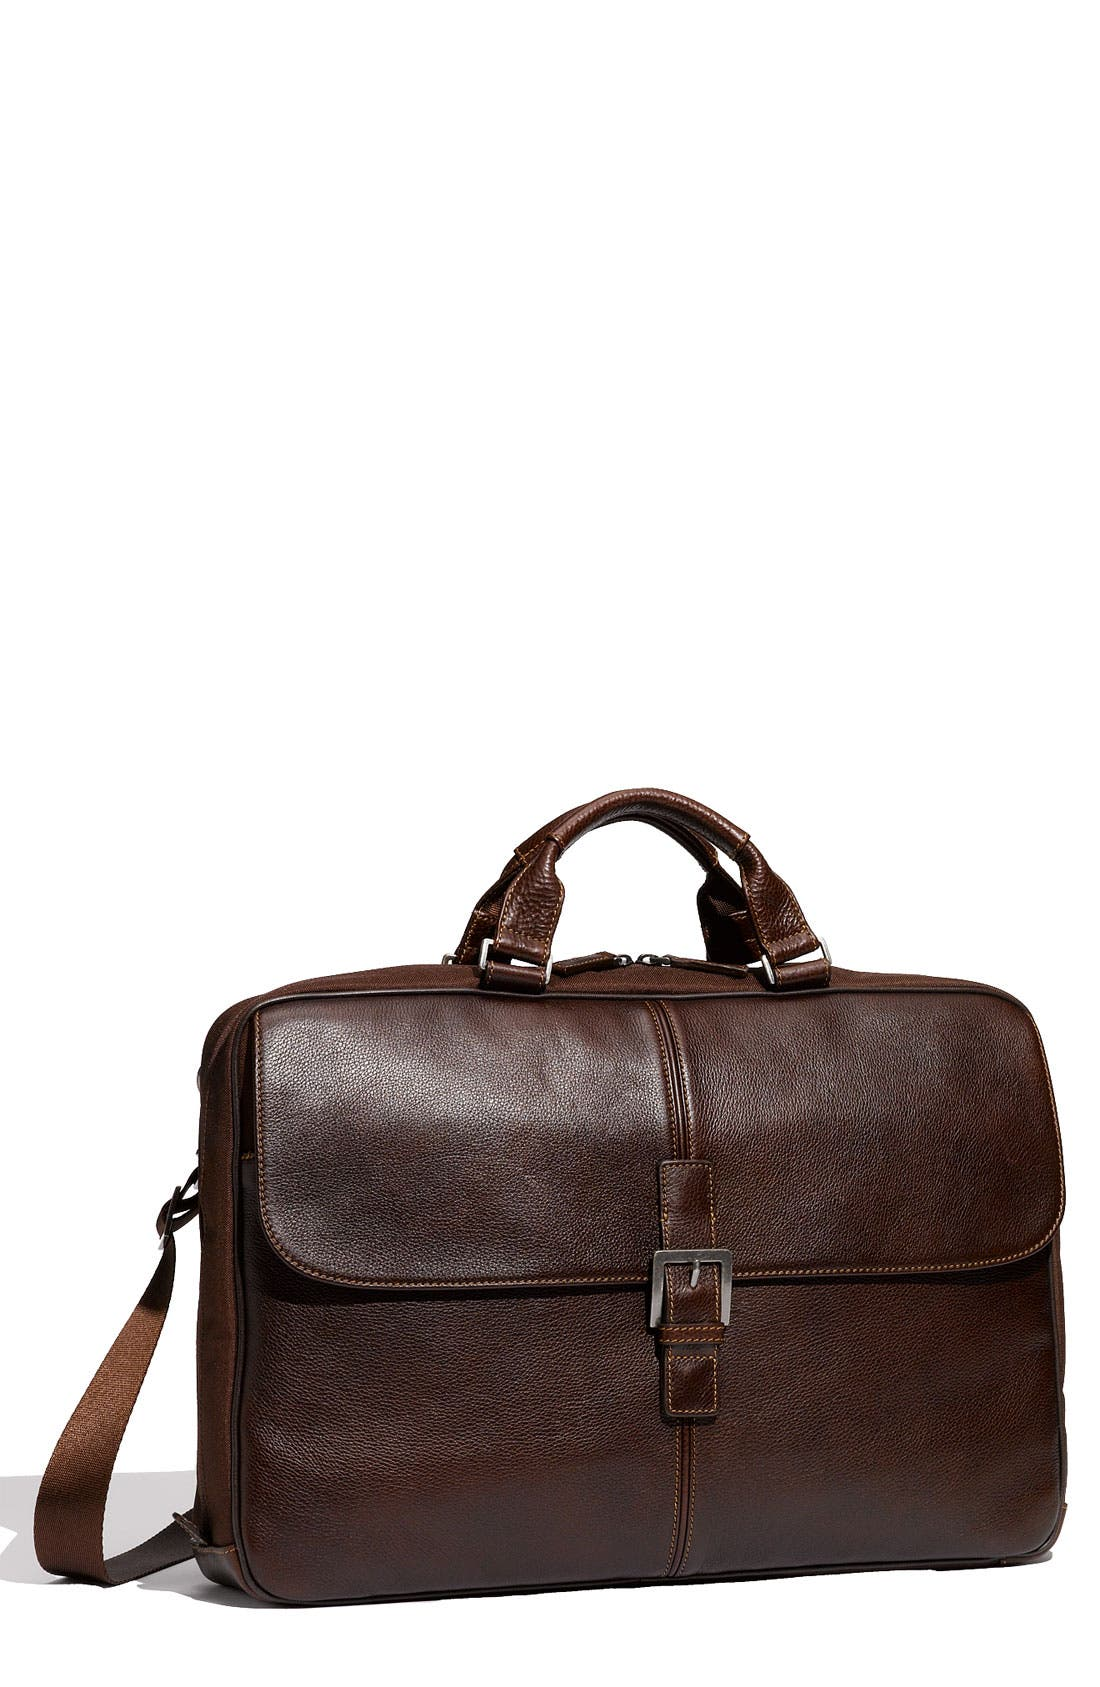 Main Image - Boconi 'Tyler - Dispatche' Tumbled Leather Briefcase